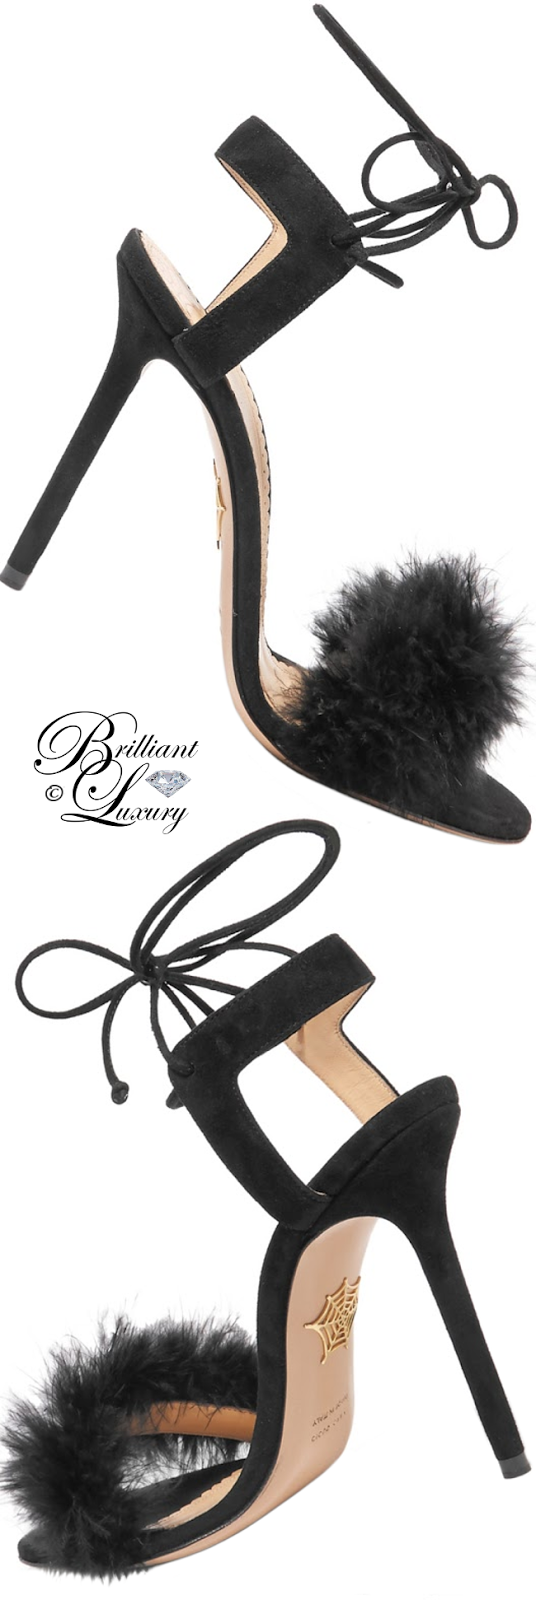 Brilliant Luxury ♦ Charlotte Olympia Salsa Fur Sandals